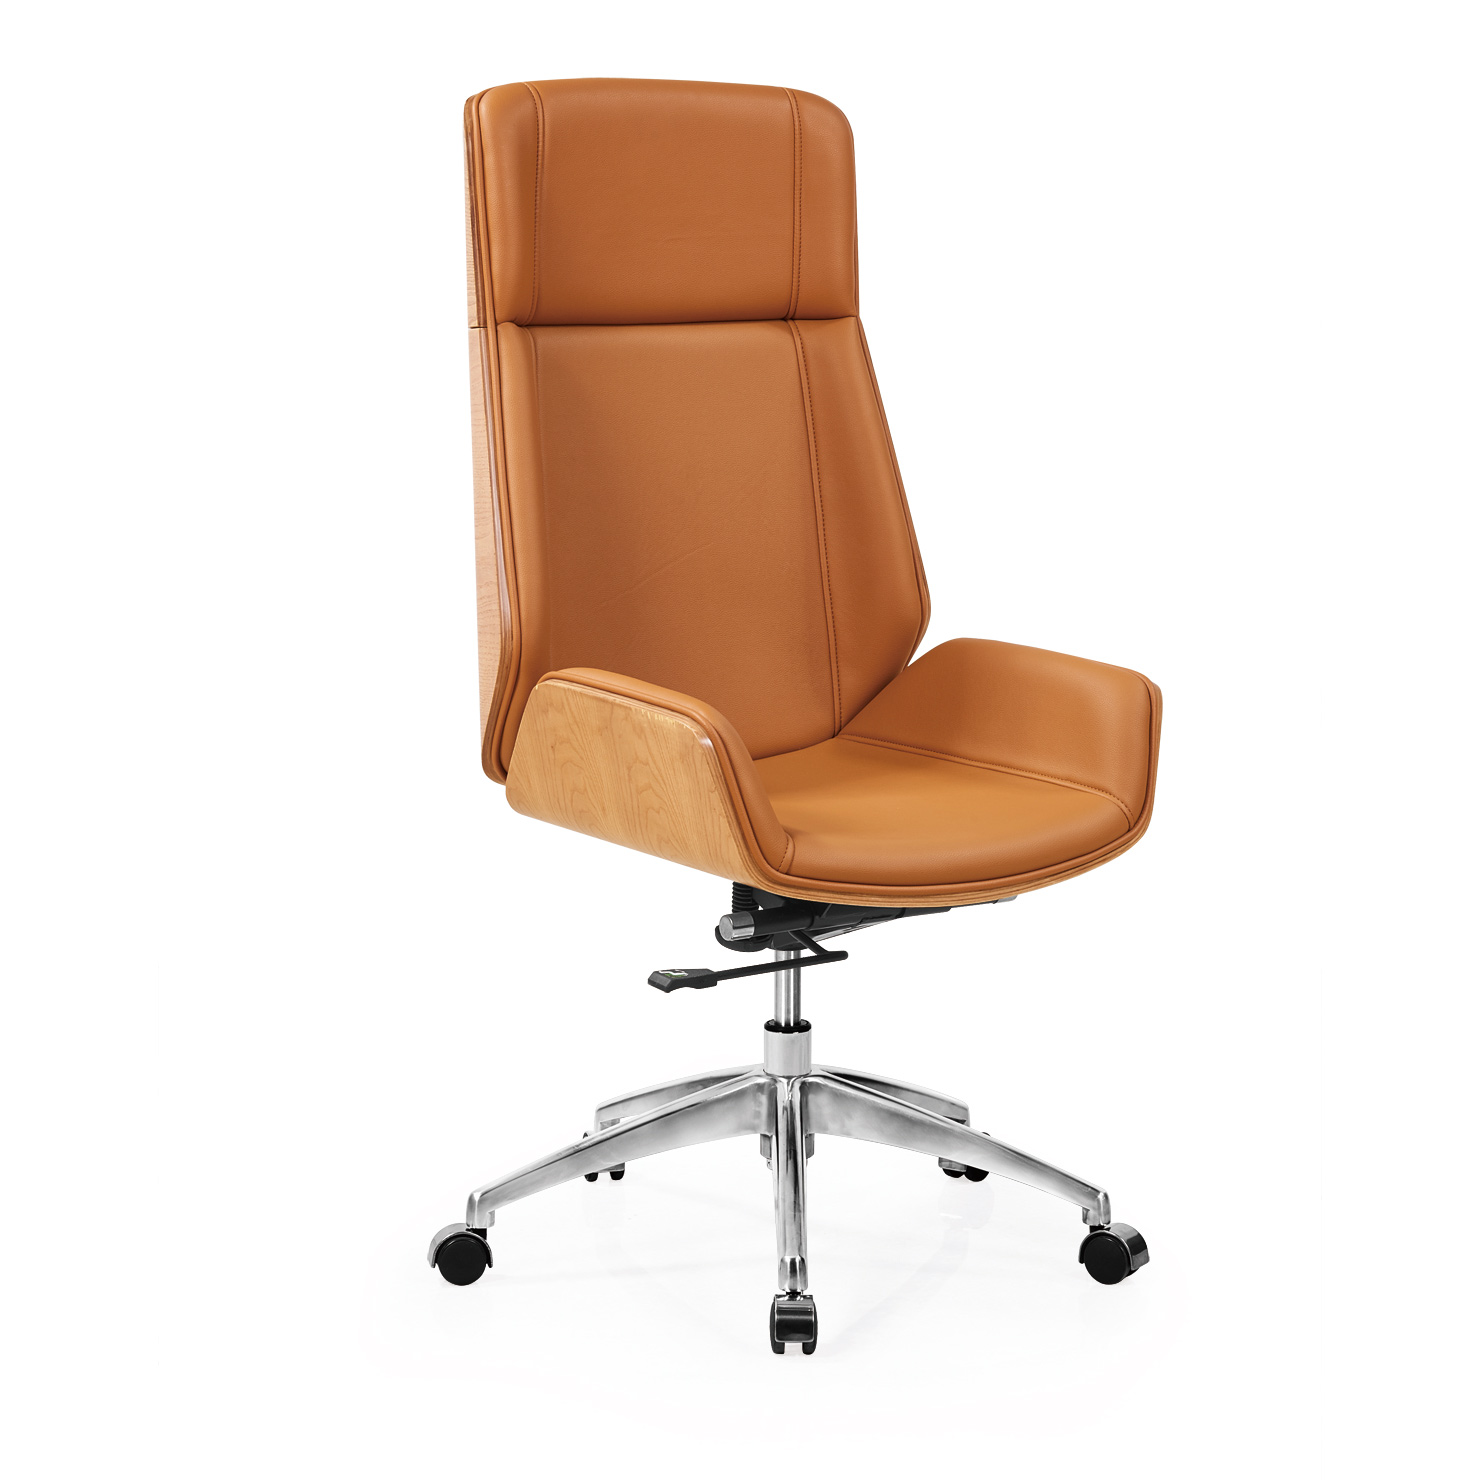 China factory relax office chair executive leather leisure chair